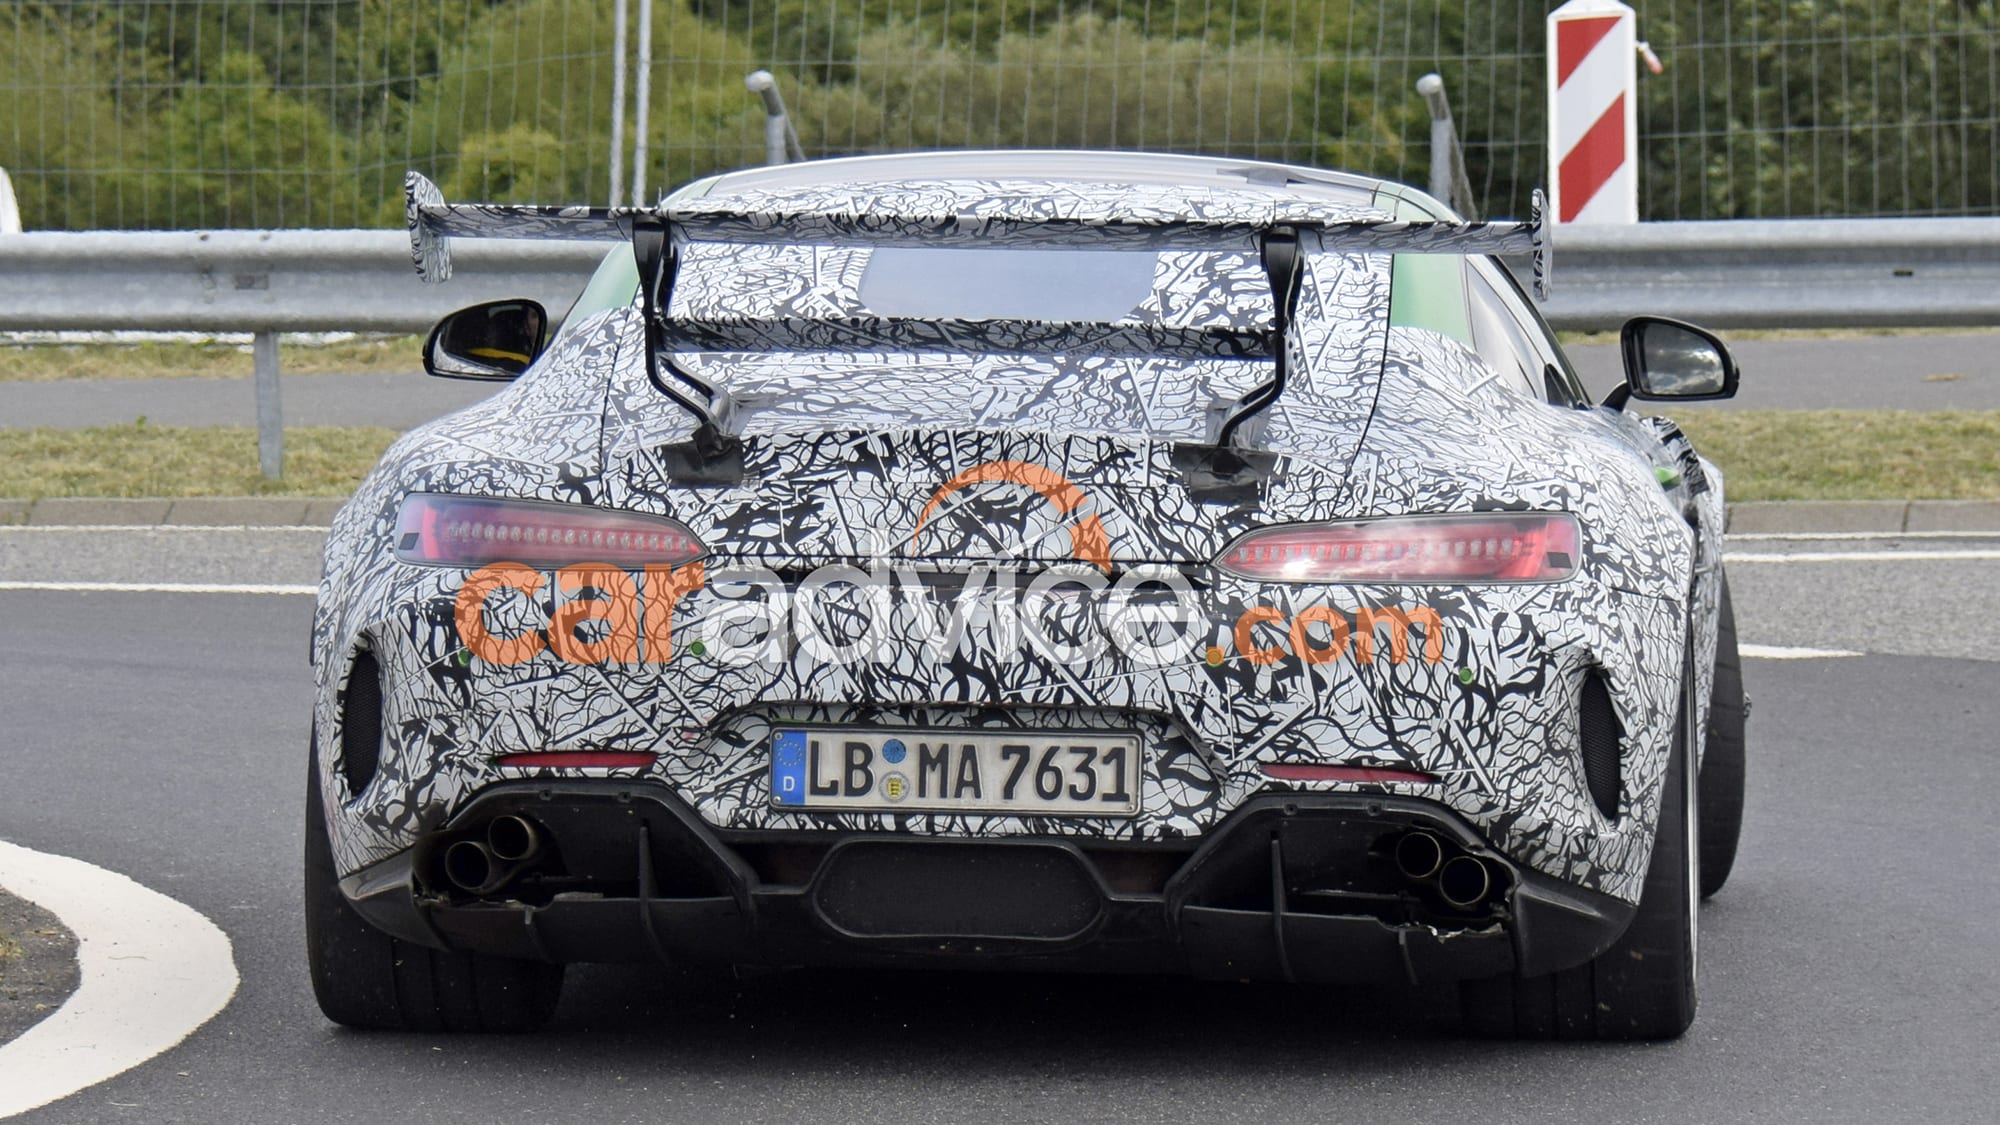 2020 Mercedes-AMG GT R Black Series spied with massive rear